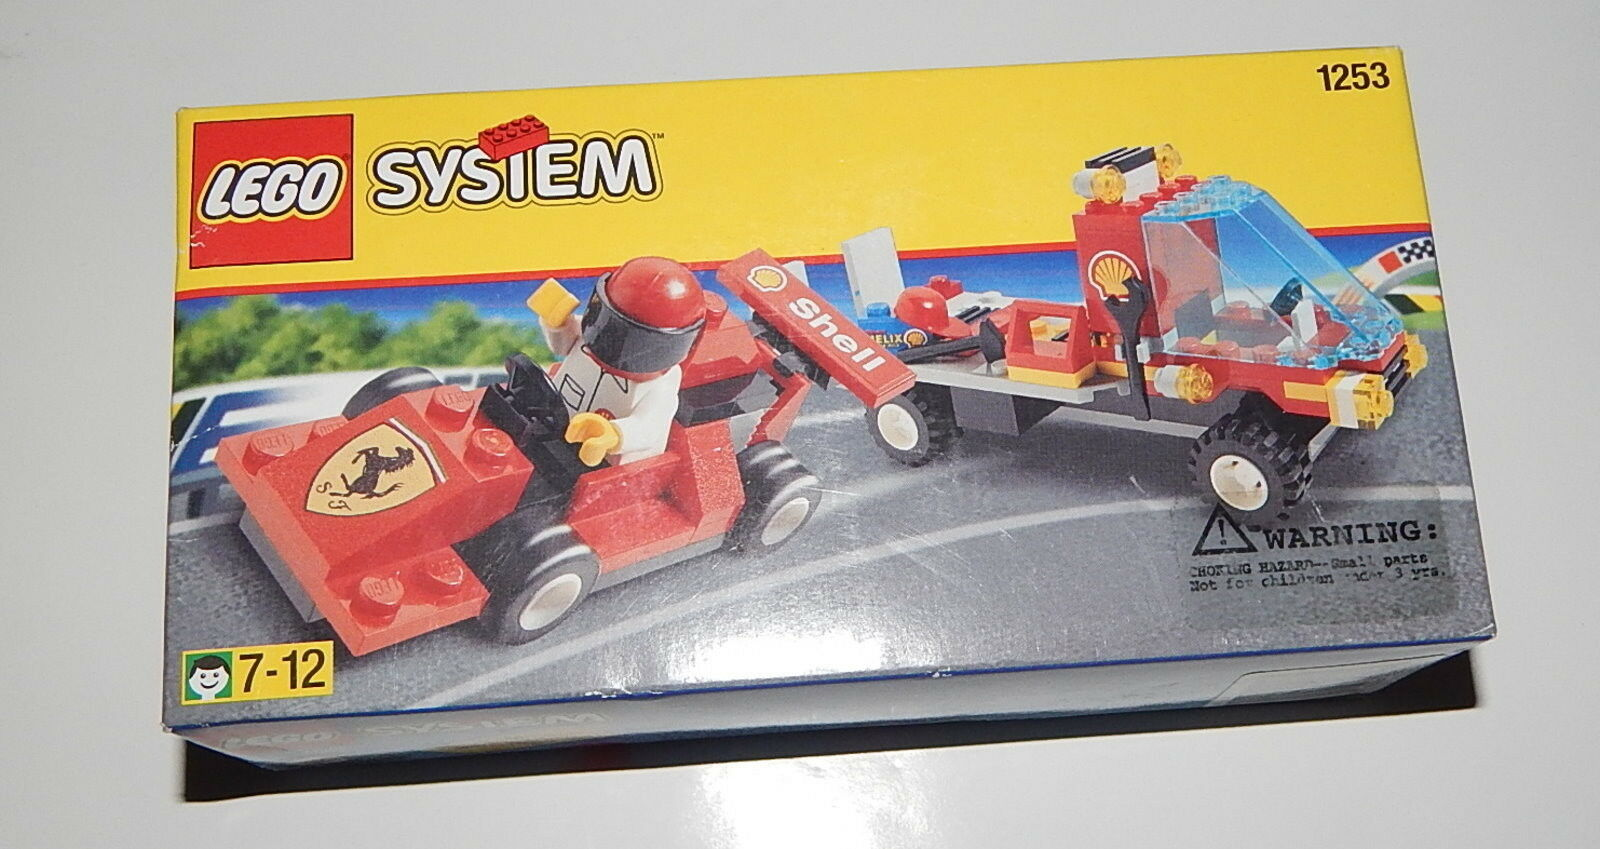 LEGO System 1253 Shell Ferrari Race Car Car Car and Transporter NEW In Box, Sealed 8d2c05